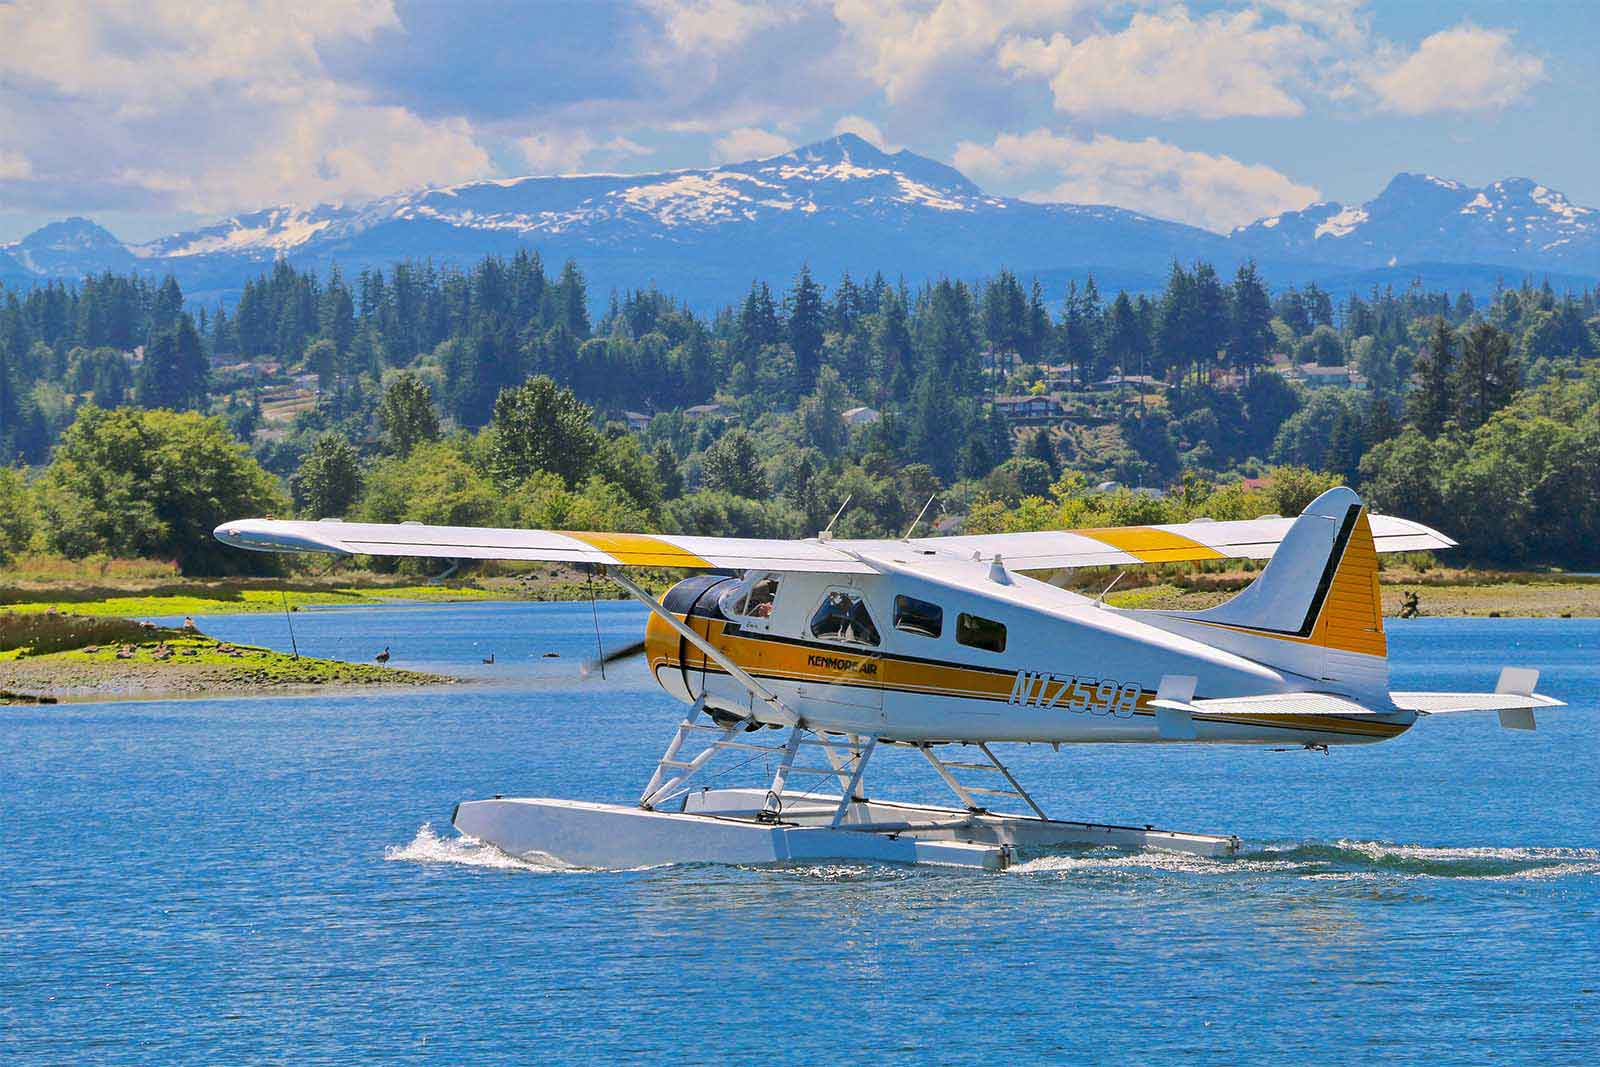 property for sale vancouver island - plane2-